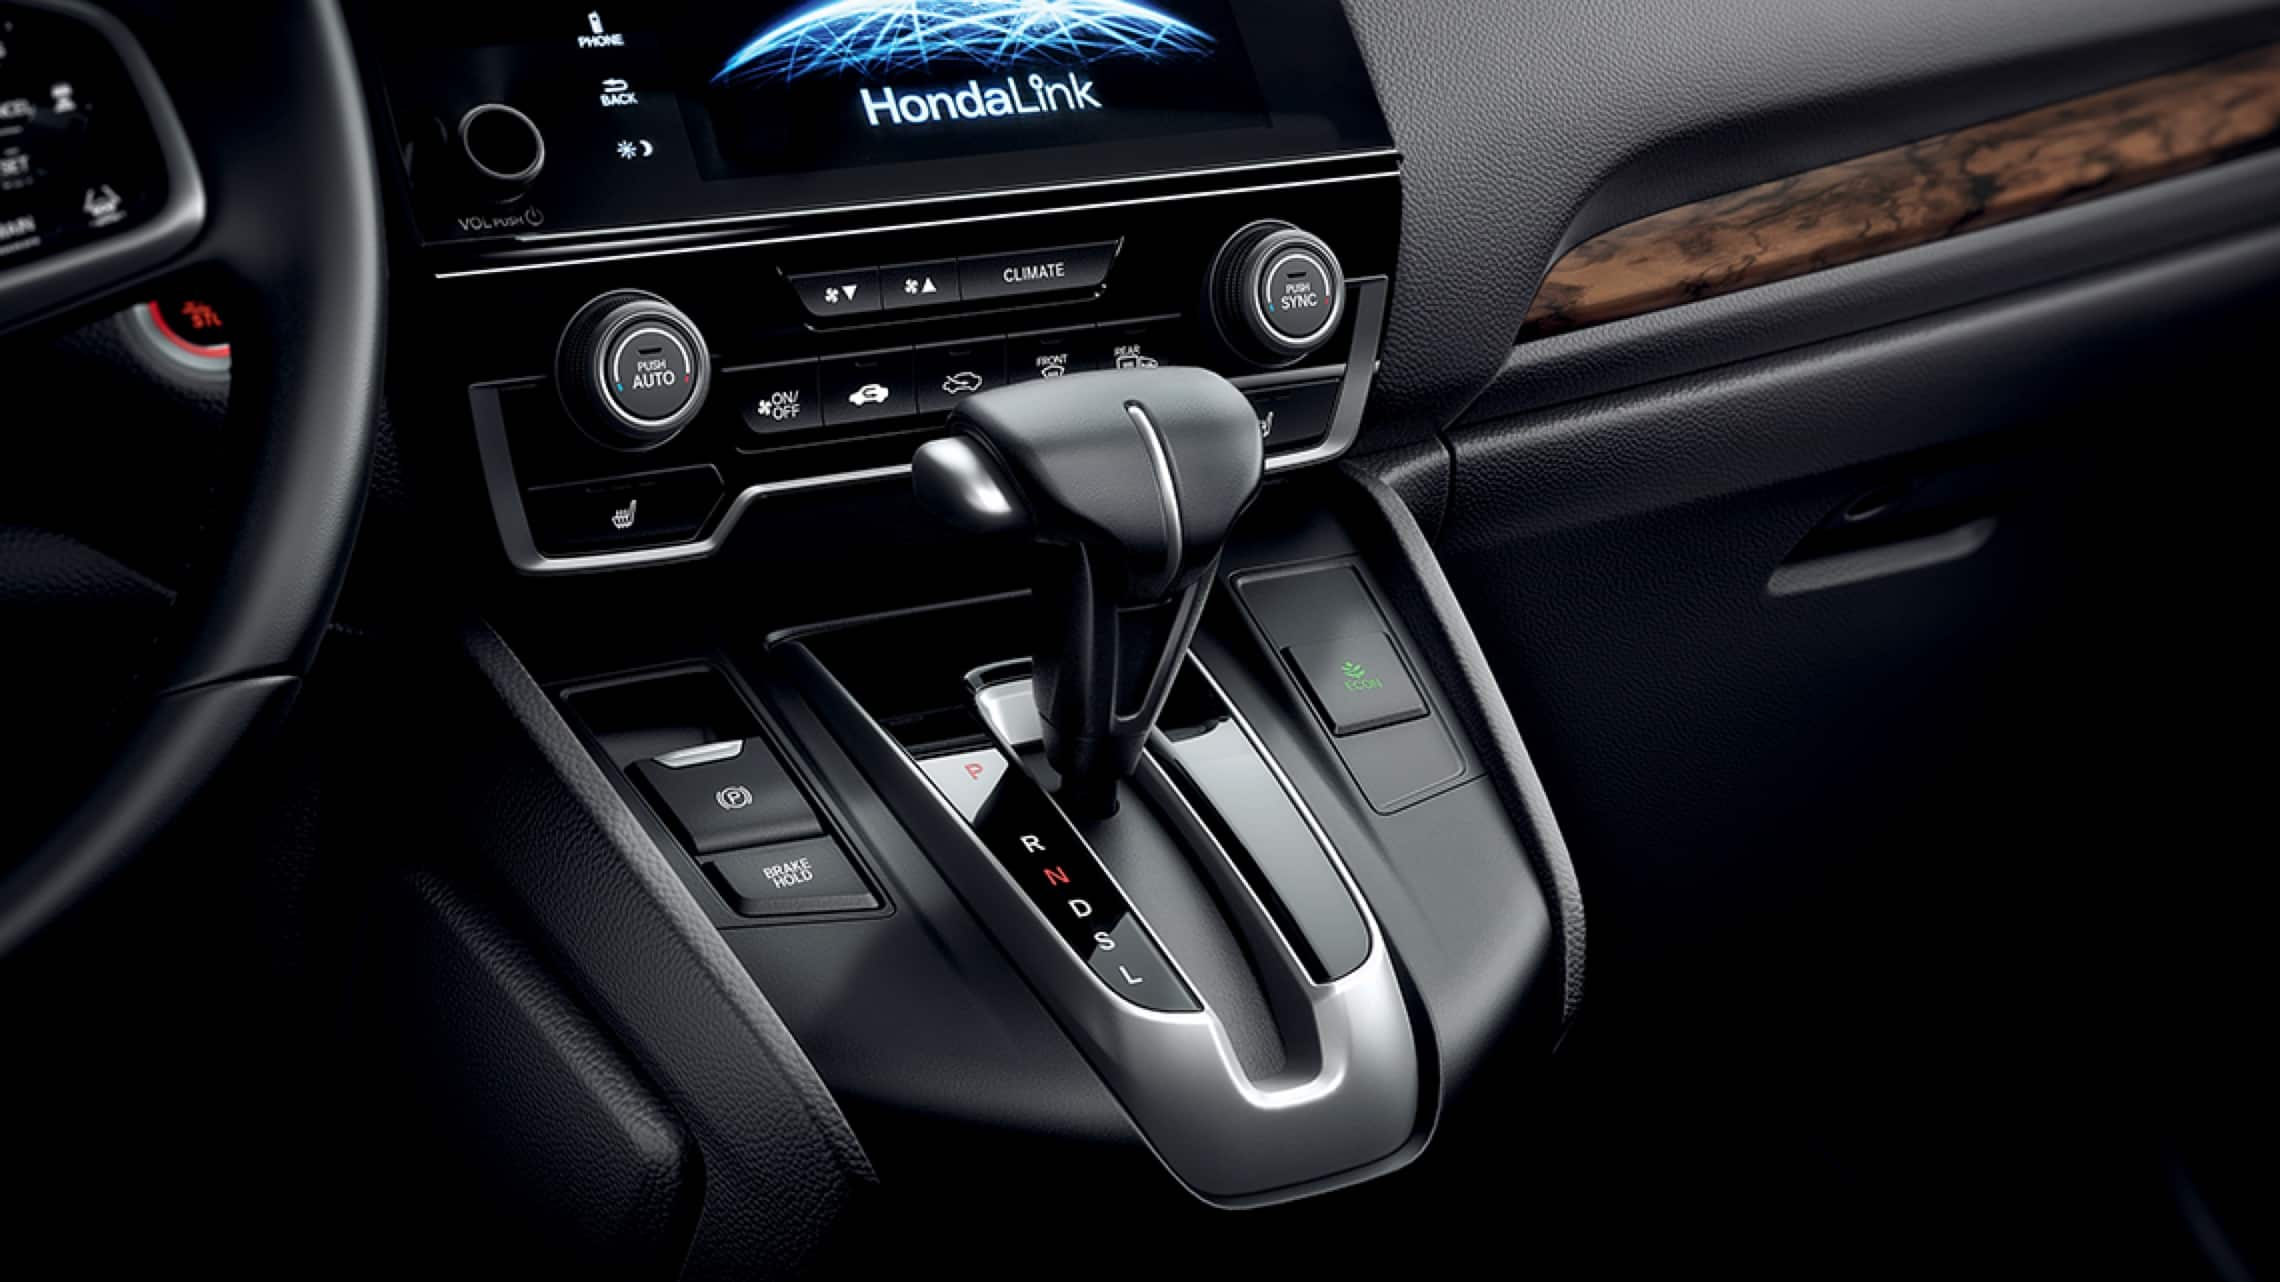 2019 Honda CR-V interior view of electric parking brake.